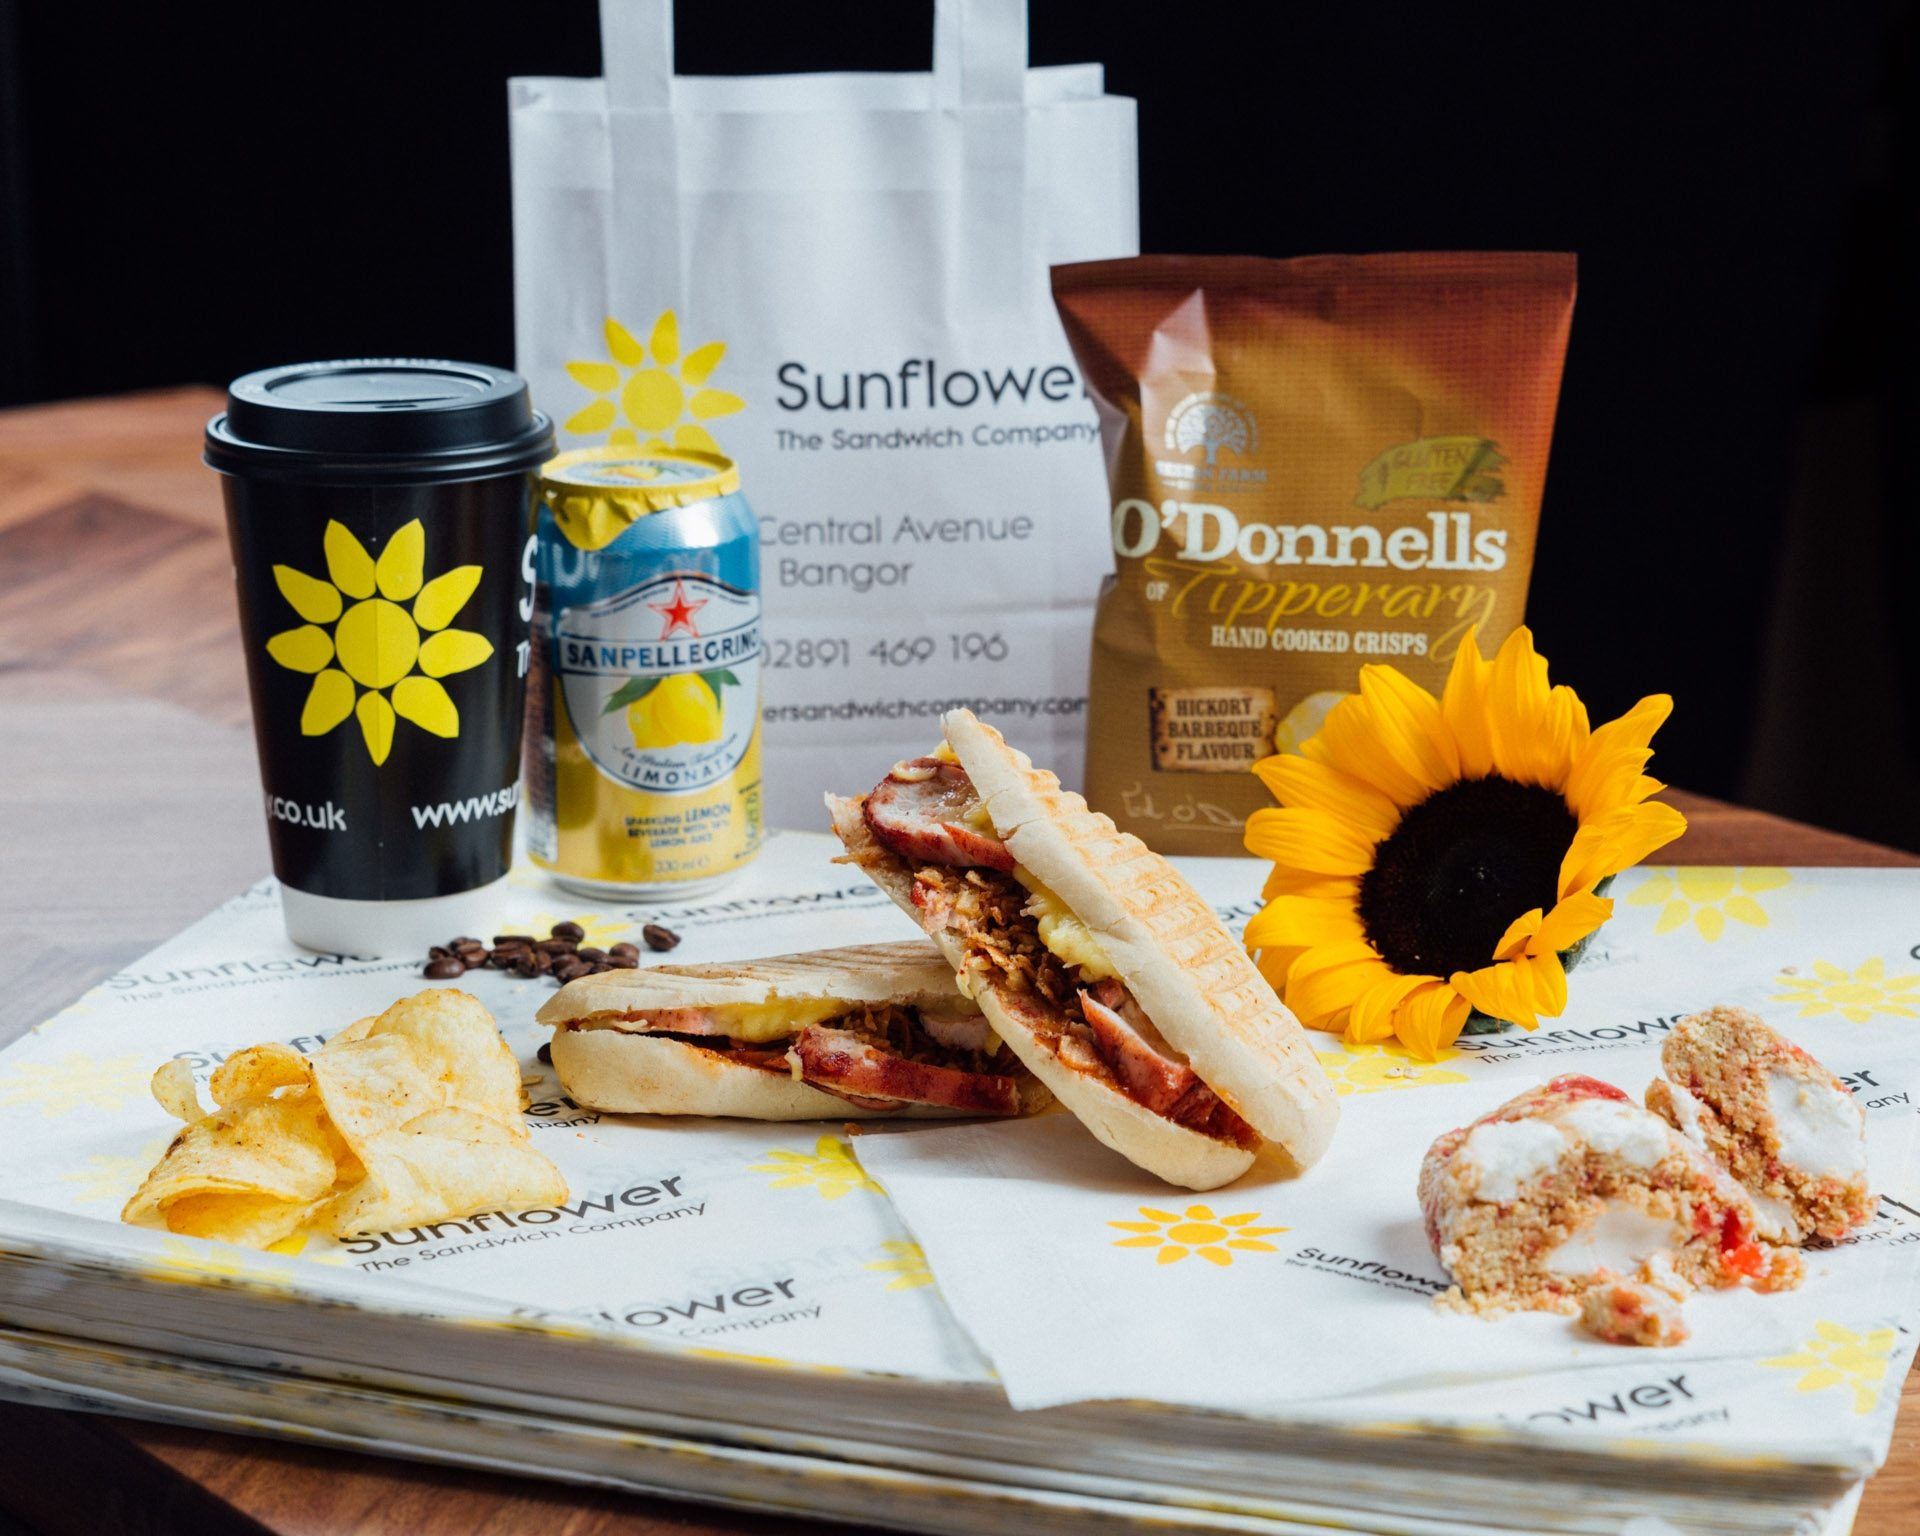 Commercial Photography by Bangor Ricky Parker Photography (Sunflower Sandwich Bar)-17